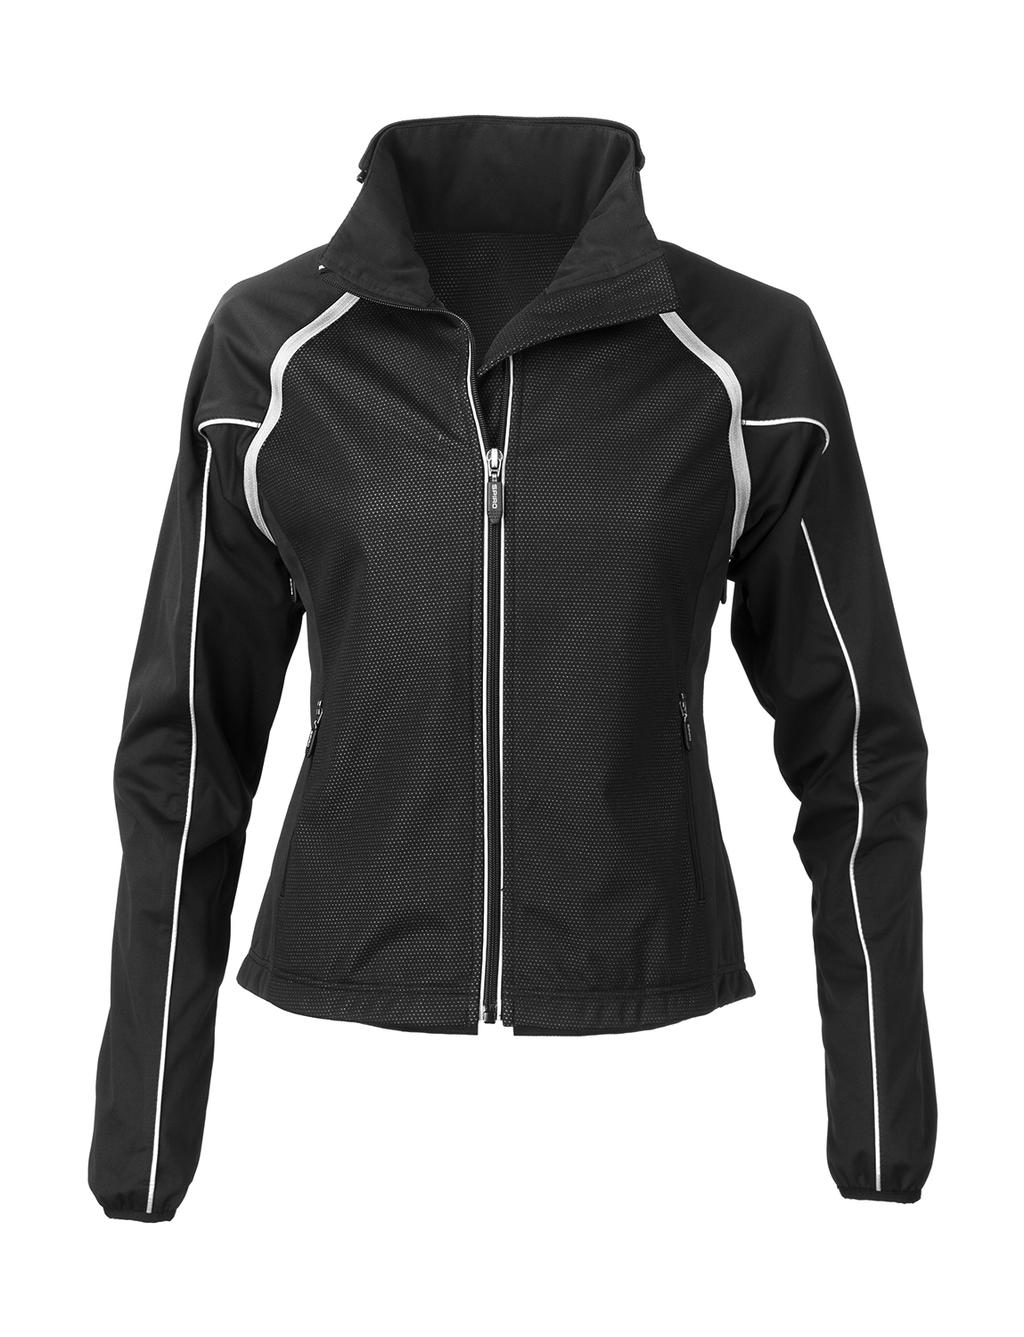 Result Women`s Race System Jacket